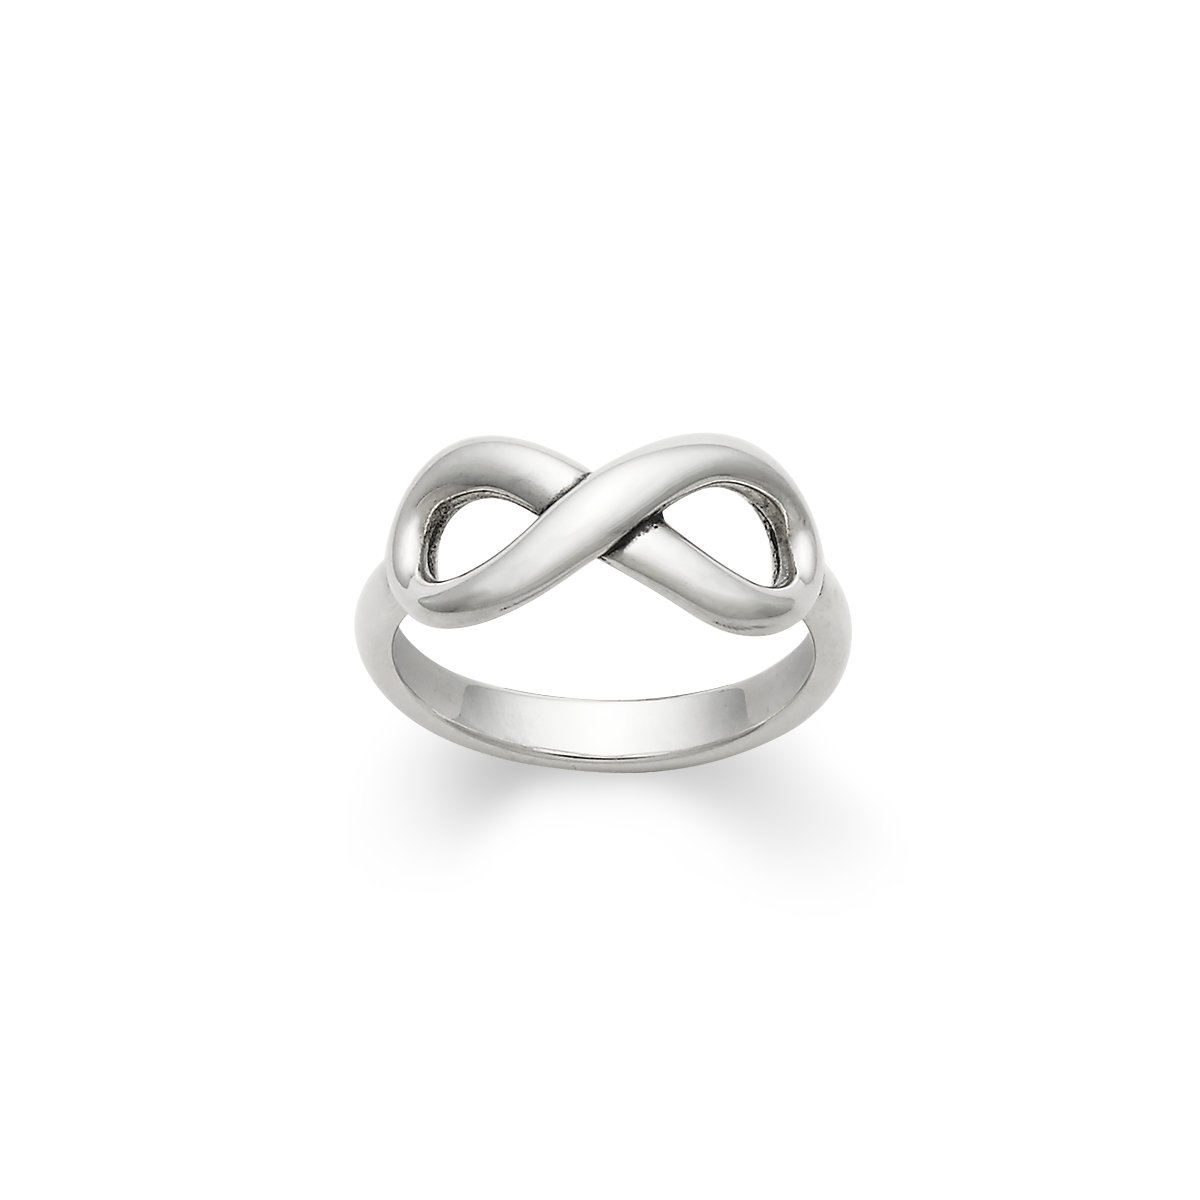 Infinity ring james avery share buycottarizona Choice Image